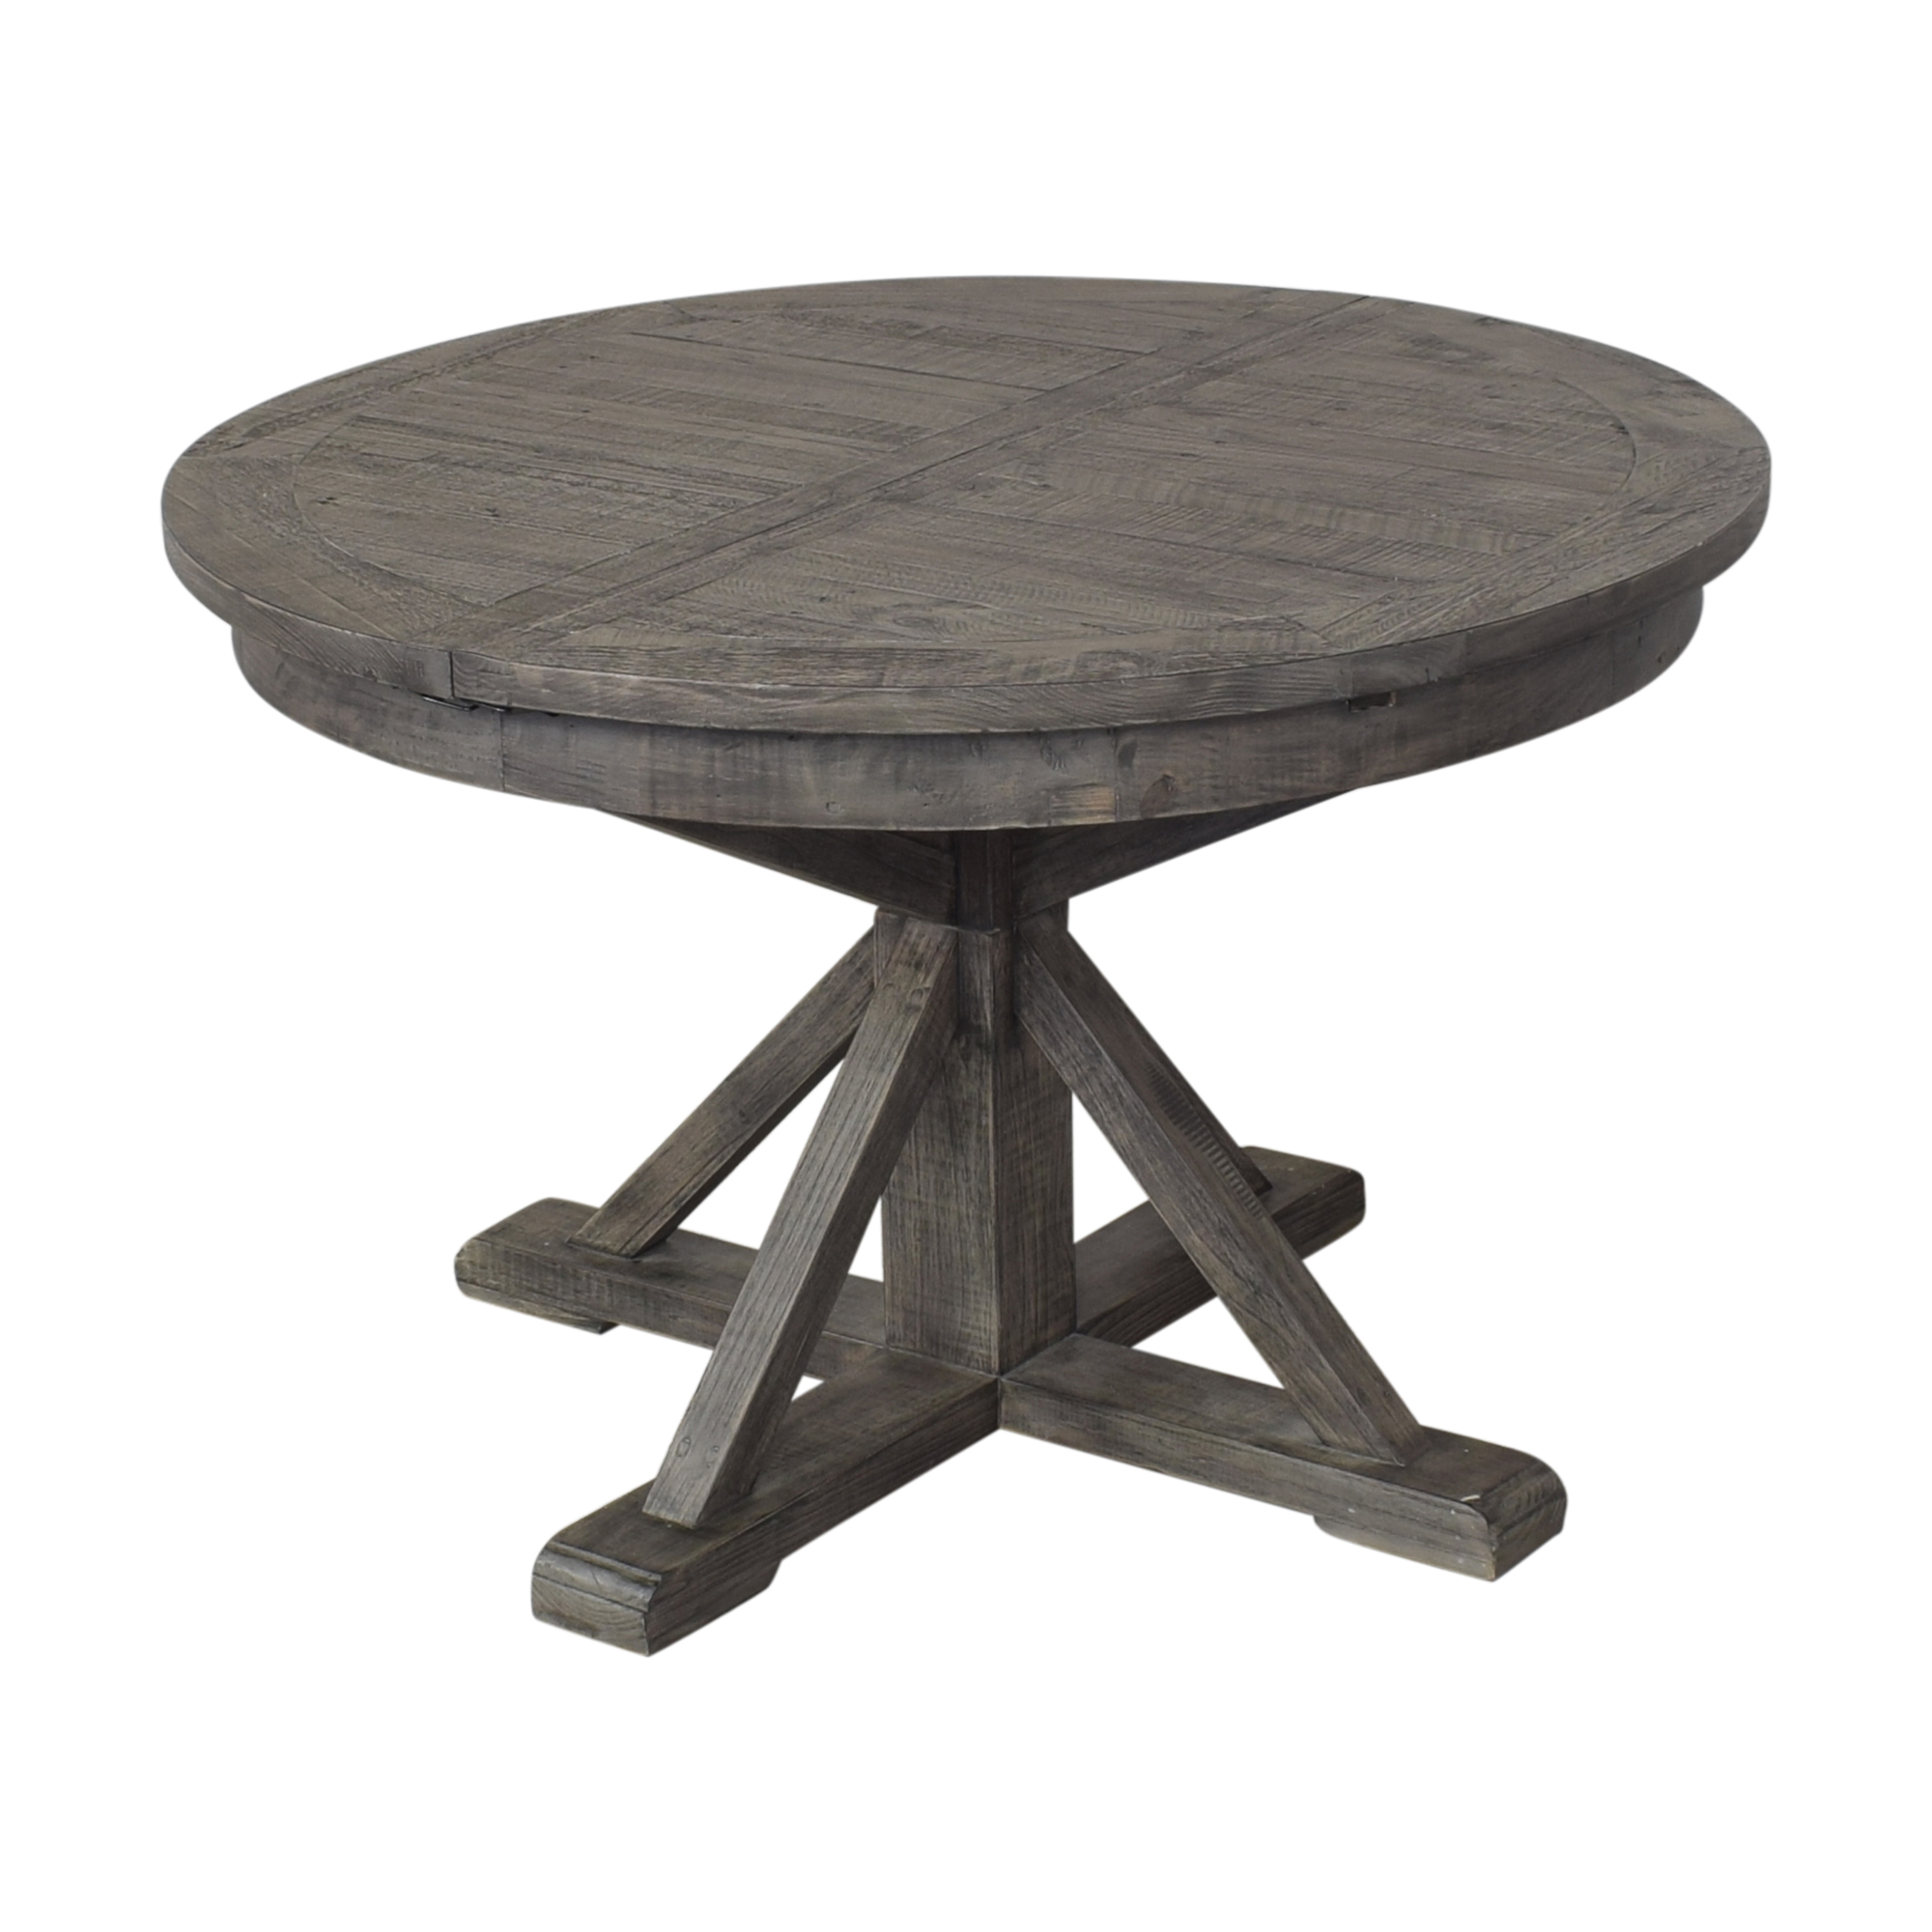 Pottery Barn Pottery Barn Hart Round Reclaimed Dining Table price